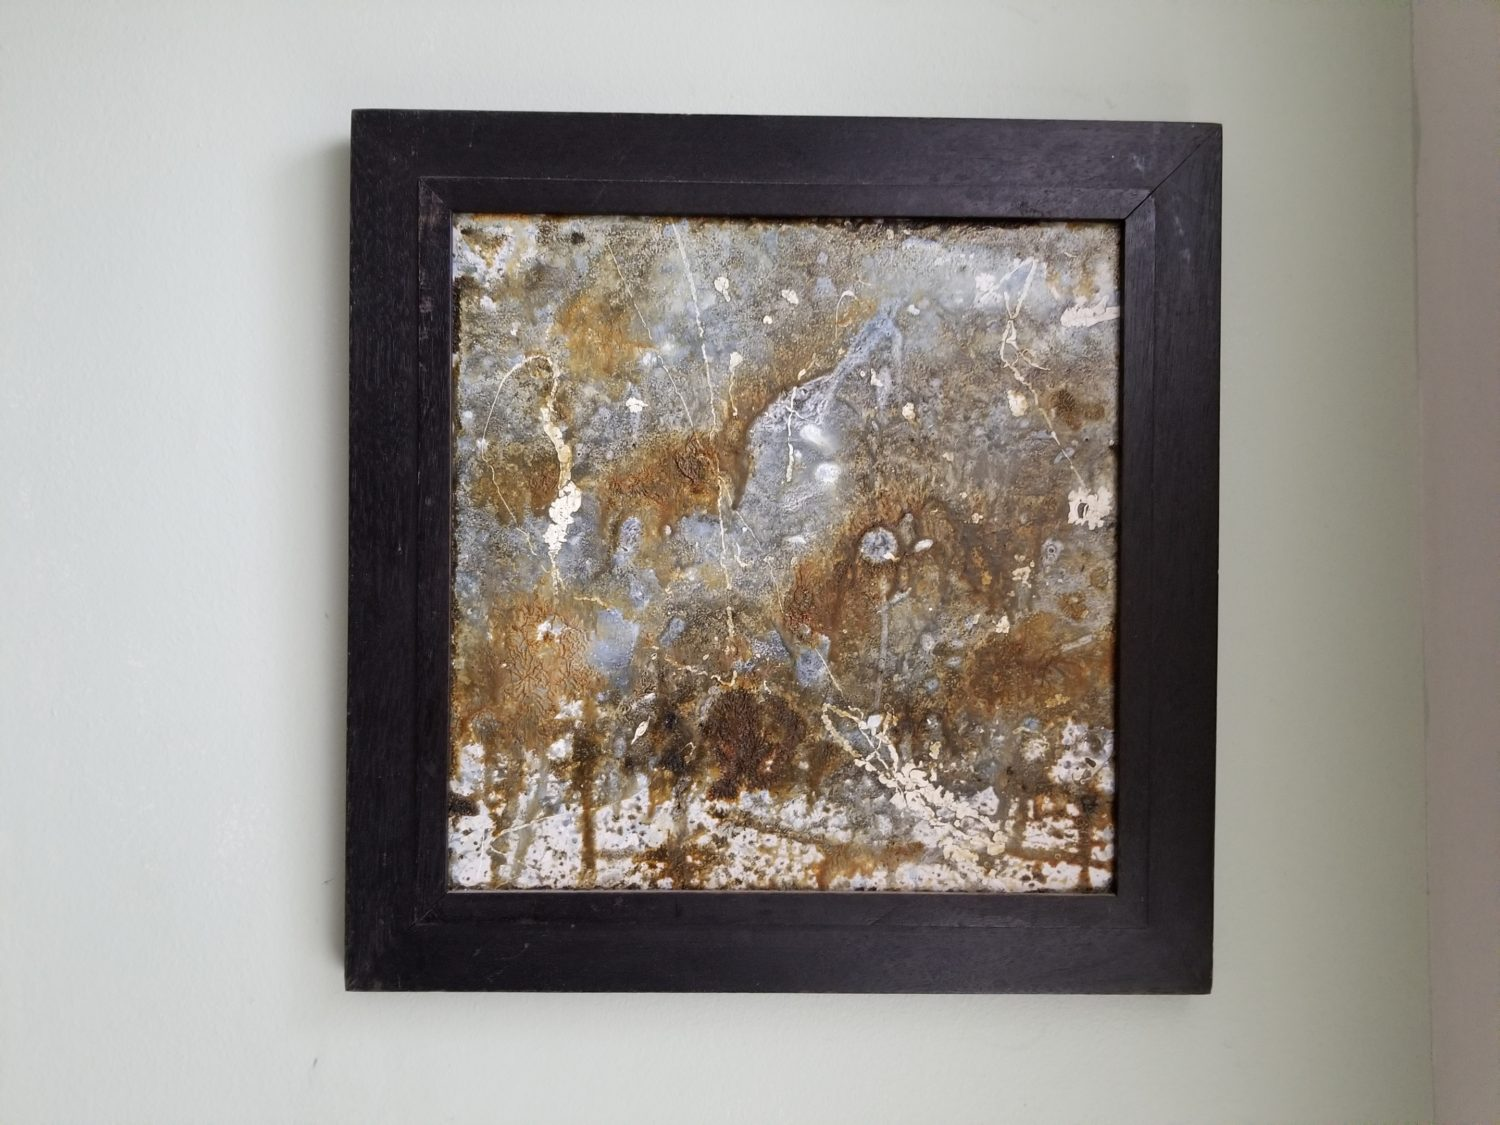 Square landscape oil painting on tile by Jessie Mann